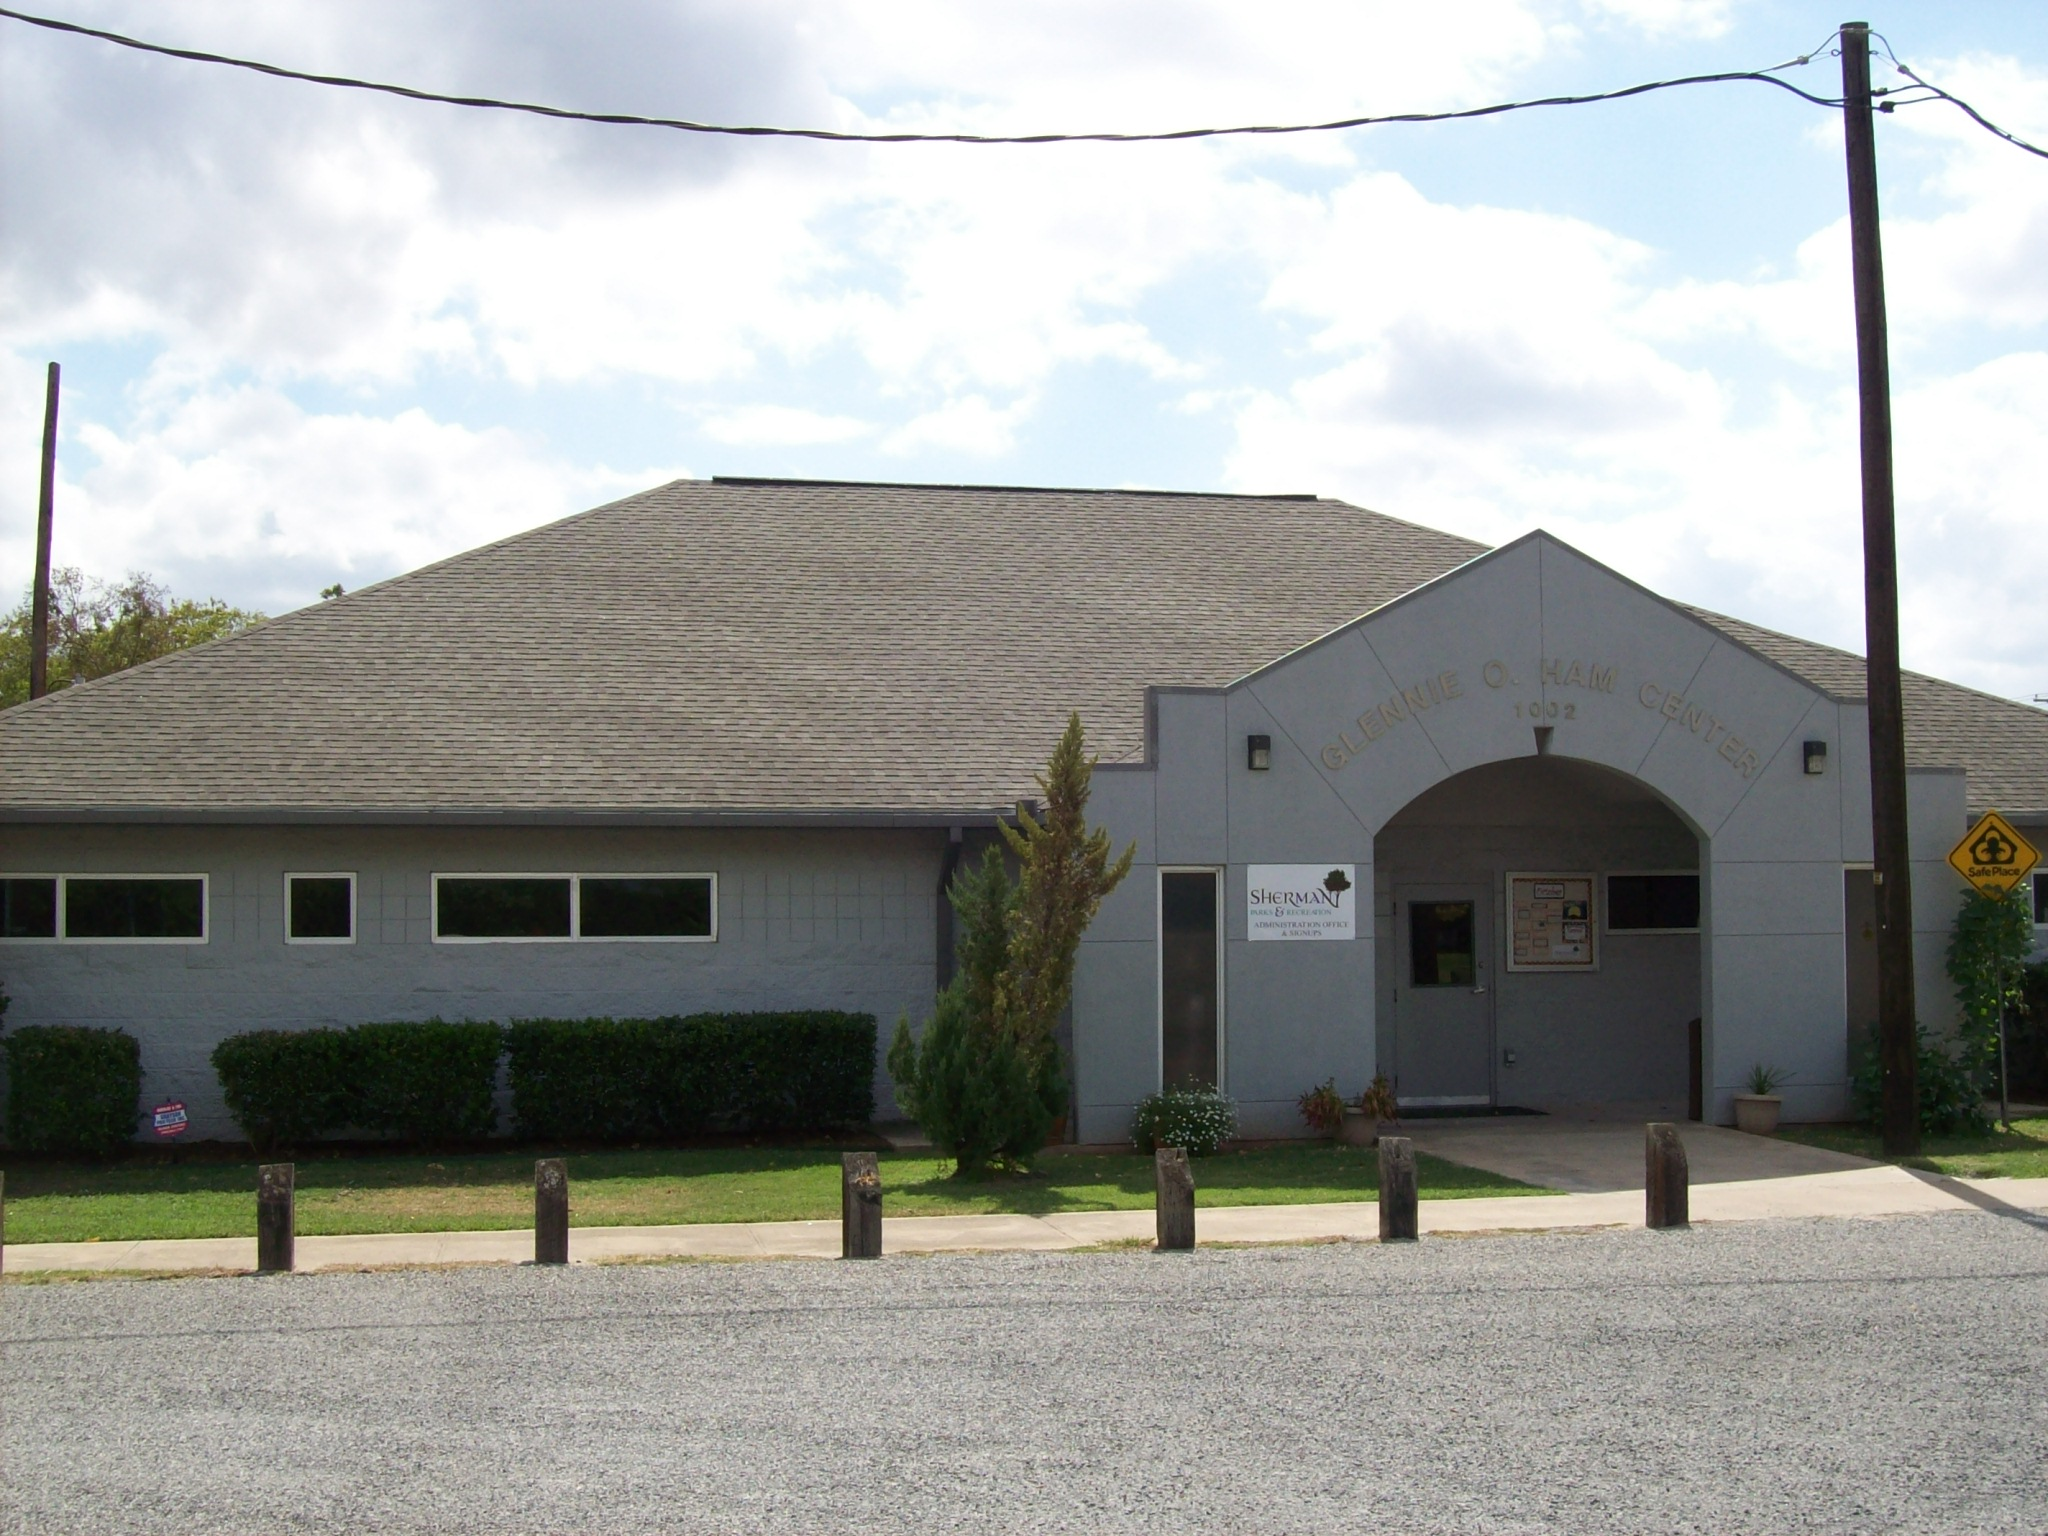 Glennie O. Ham Community Center